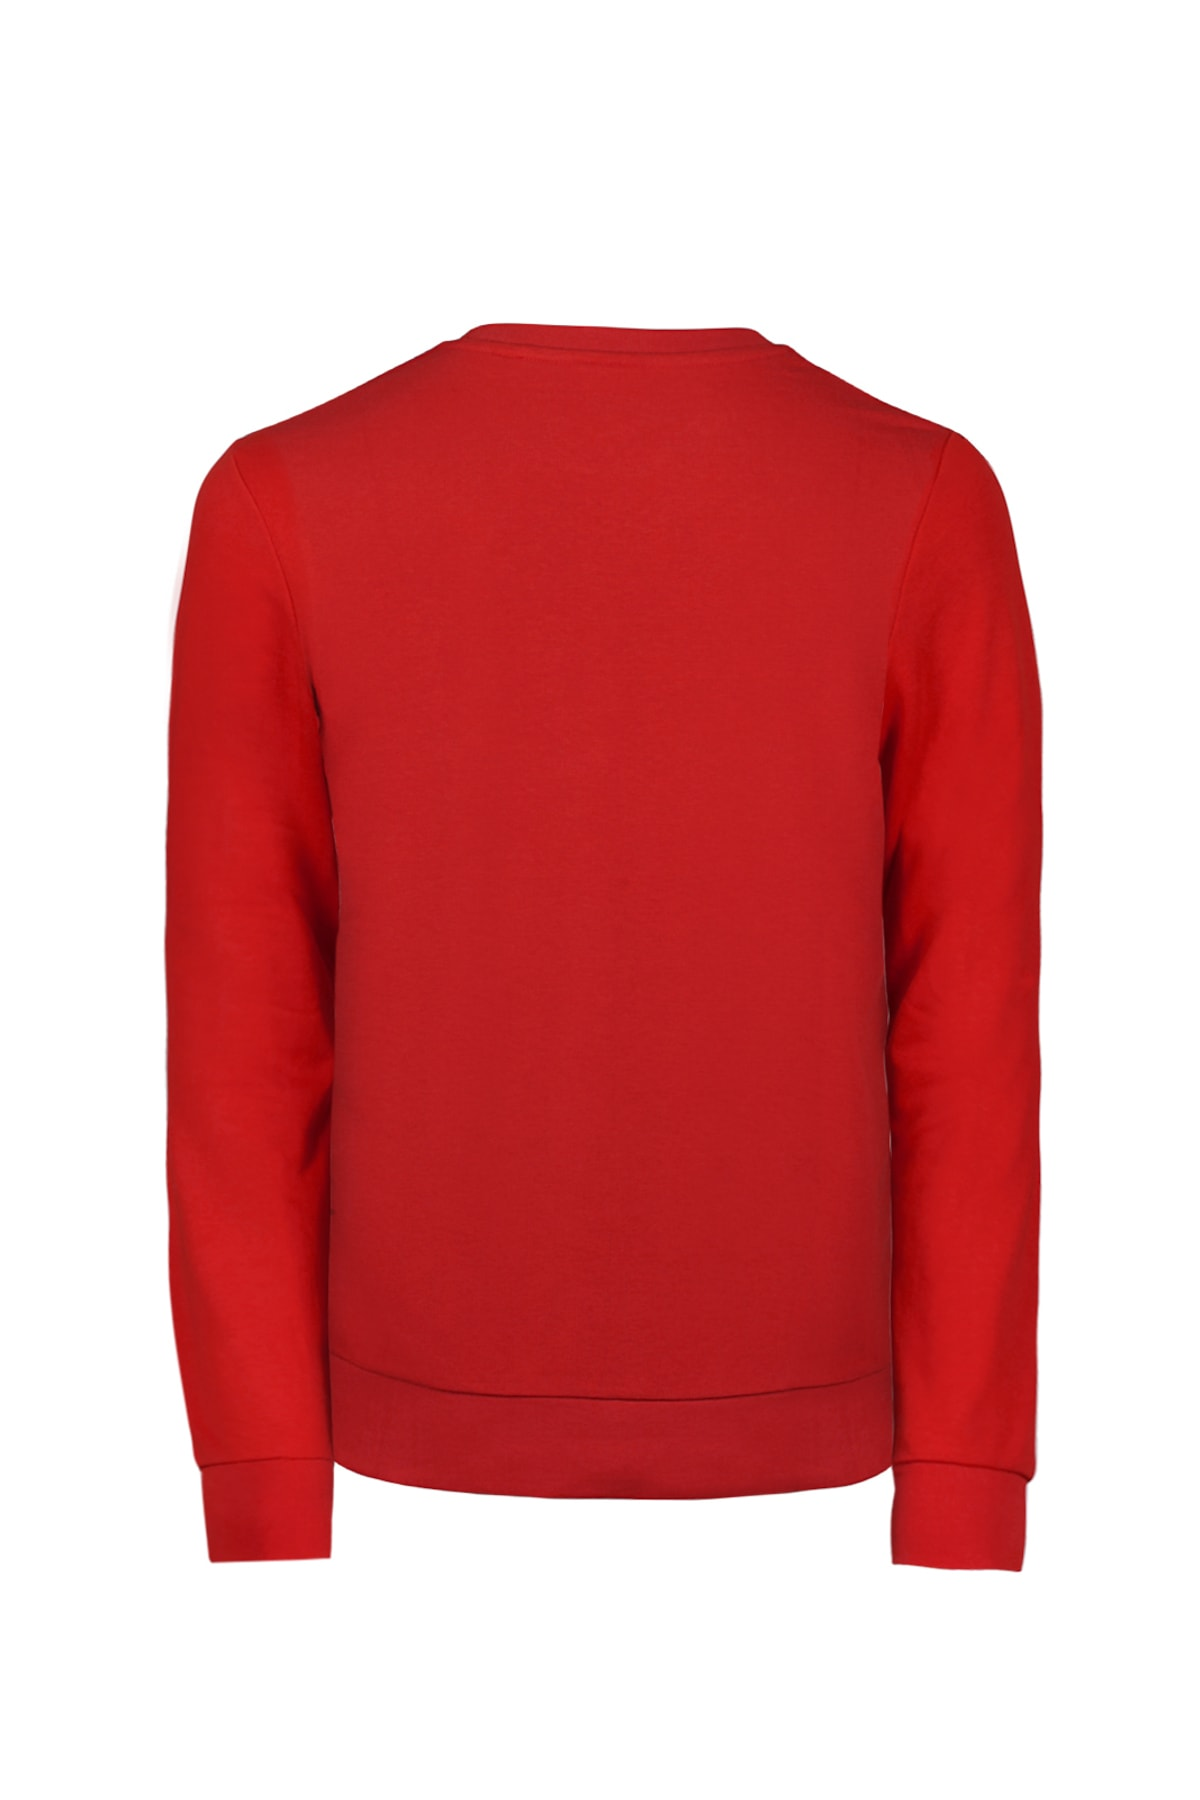 Jack & Jones Sweatshirt - Wide Originals Sweat 12182282 2